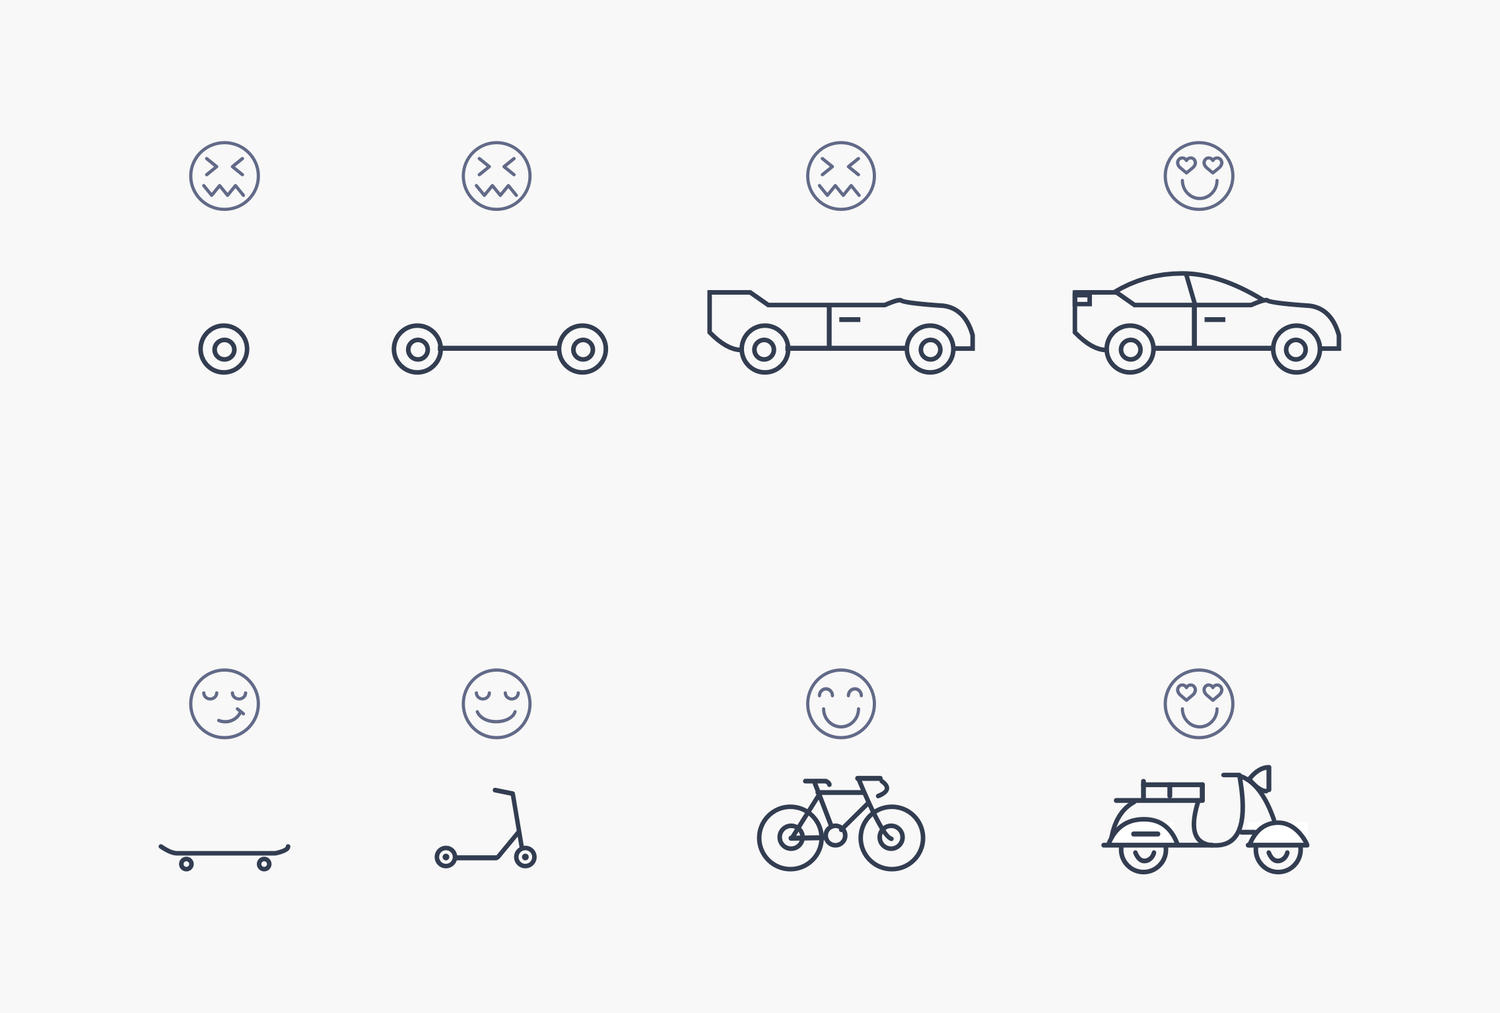 A diagram often used to demonstrate a minimum viable product. It's explained in detail over the next few paragraphs